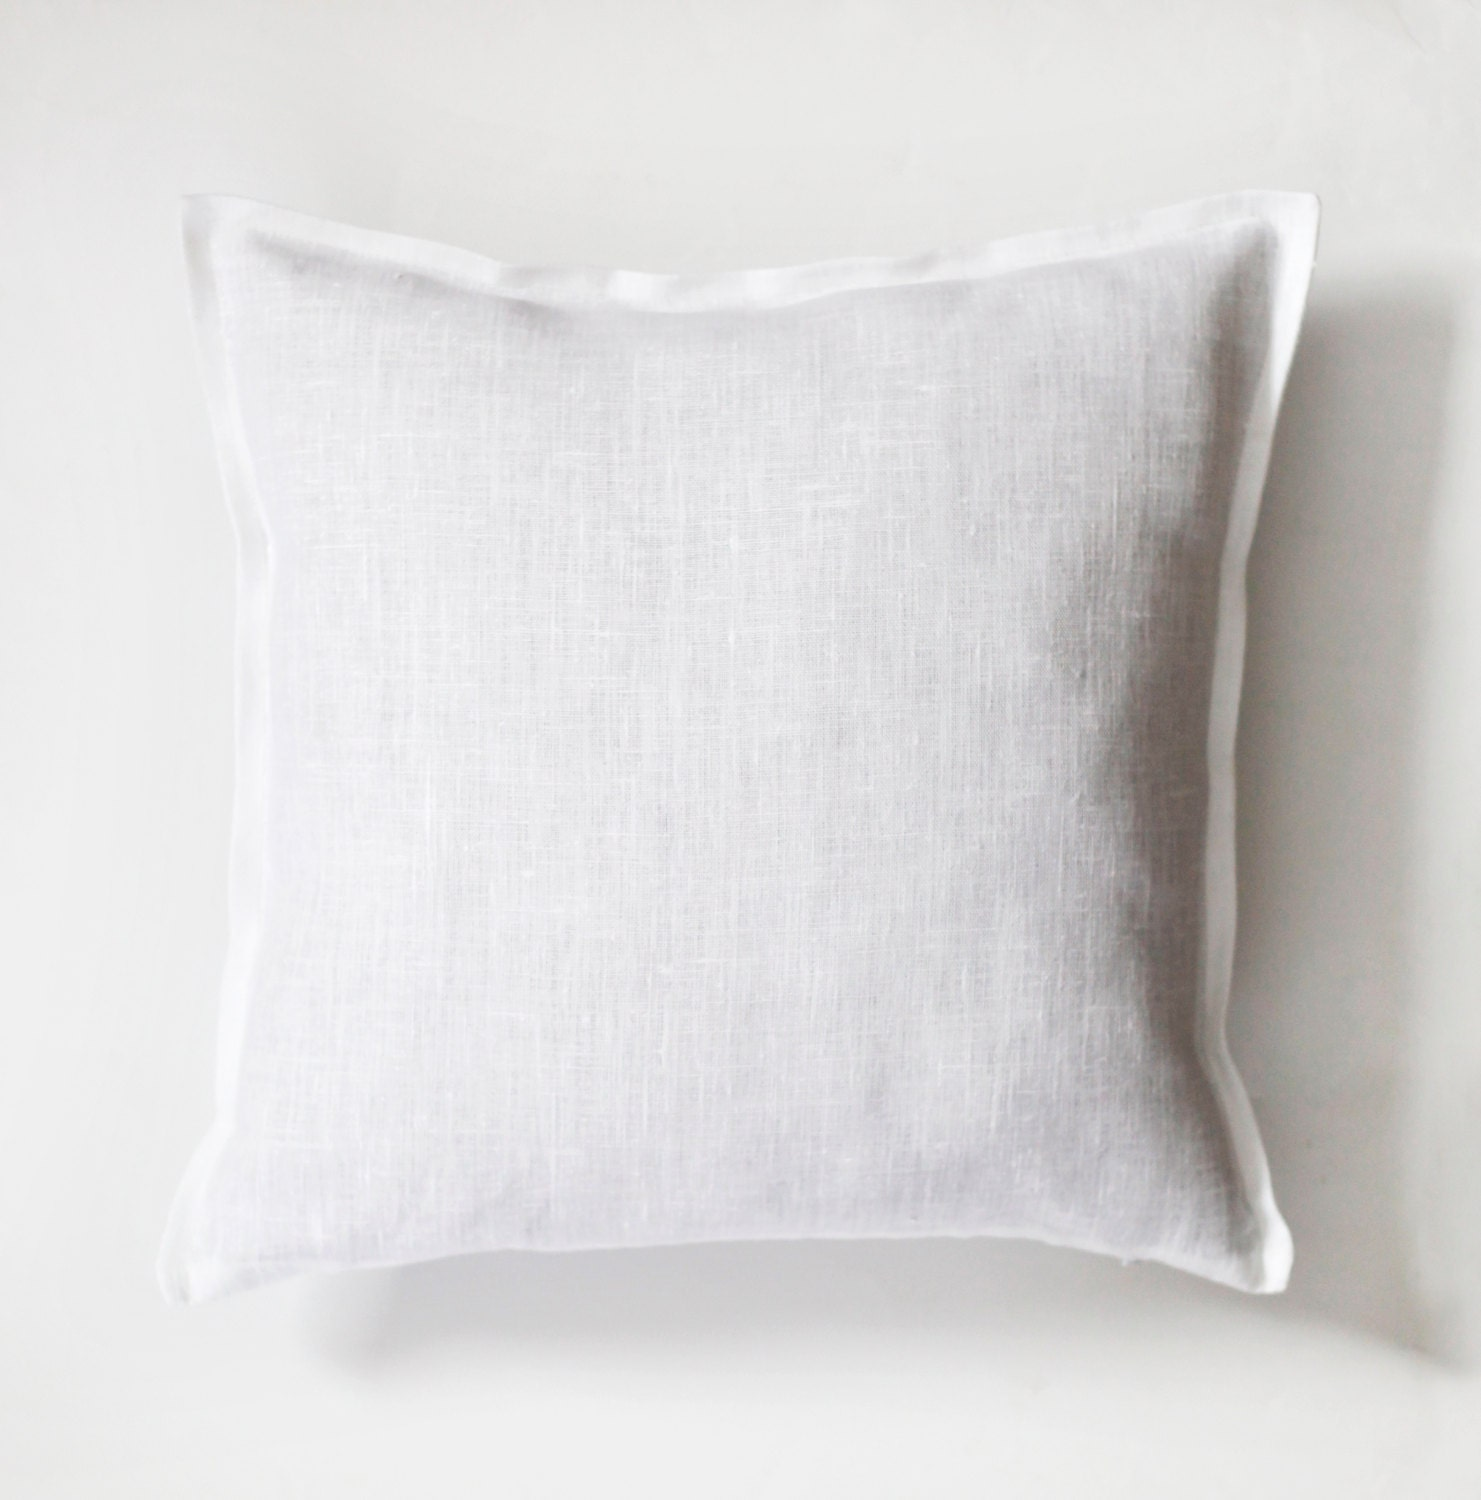 Throw Pillow Cover Measurements : White linen king size shams decorative pillow covers set of